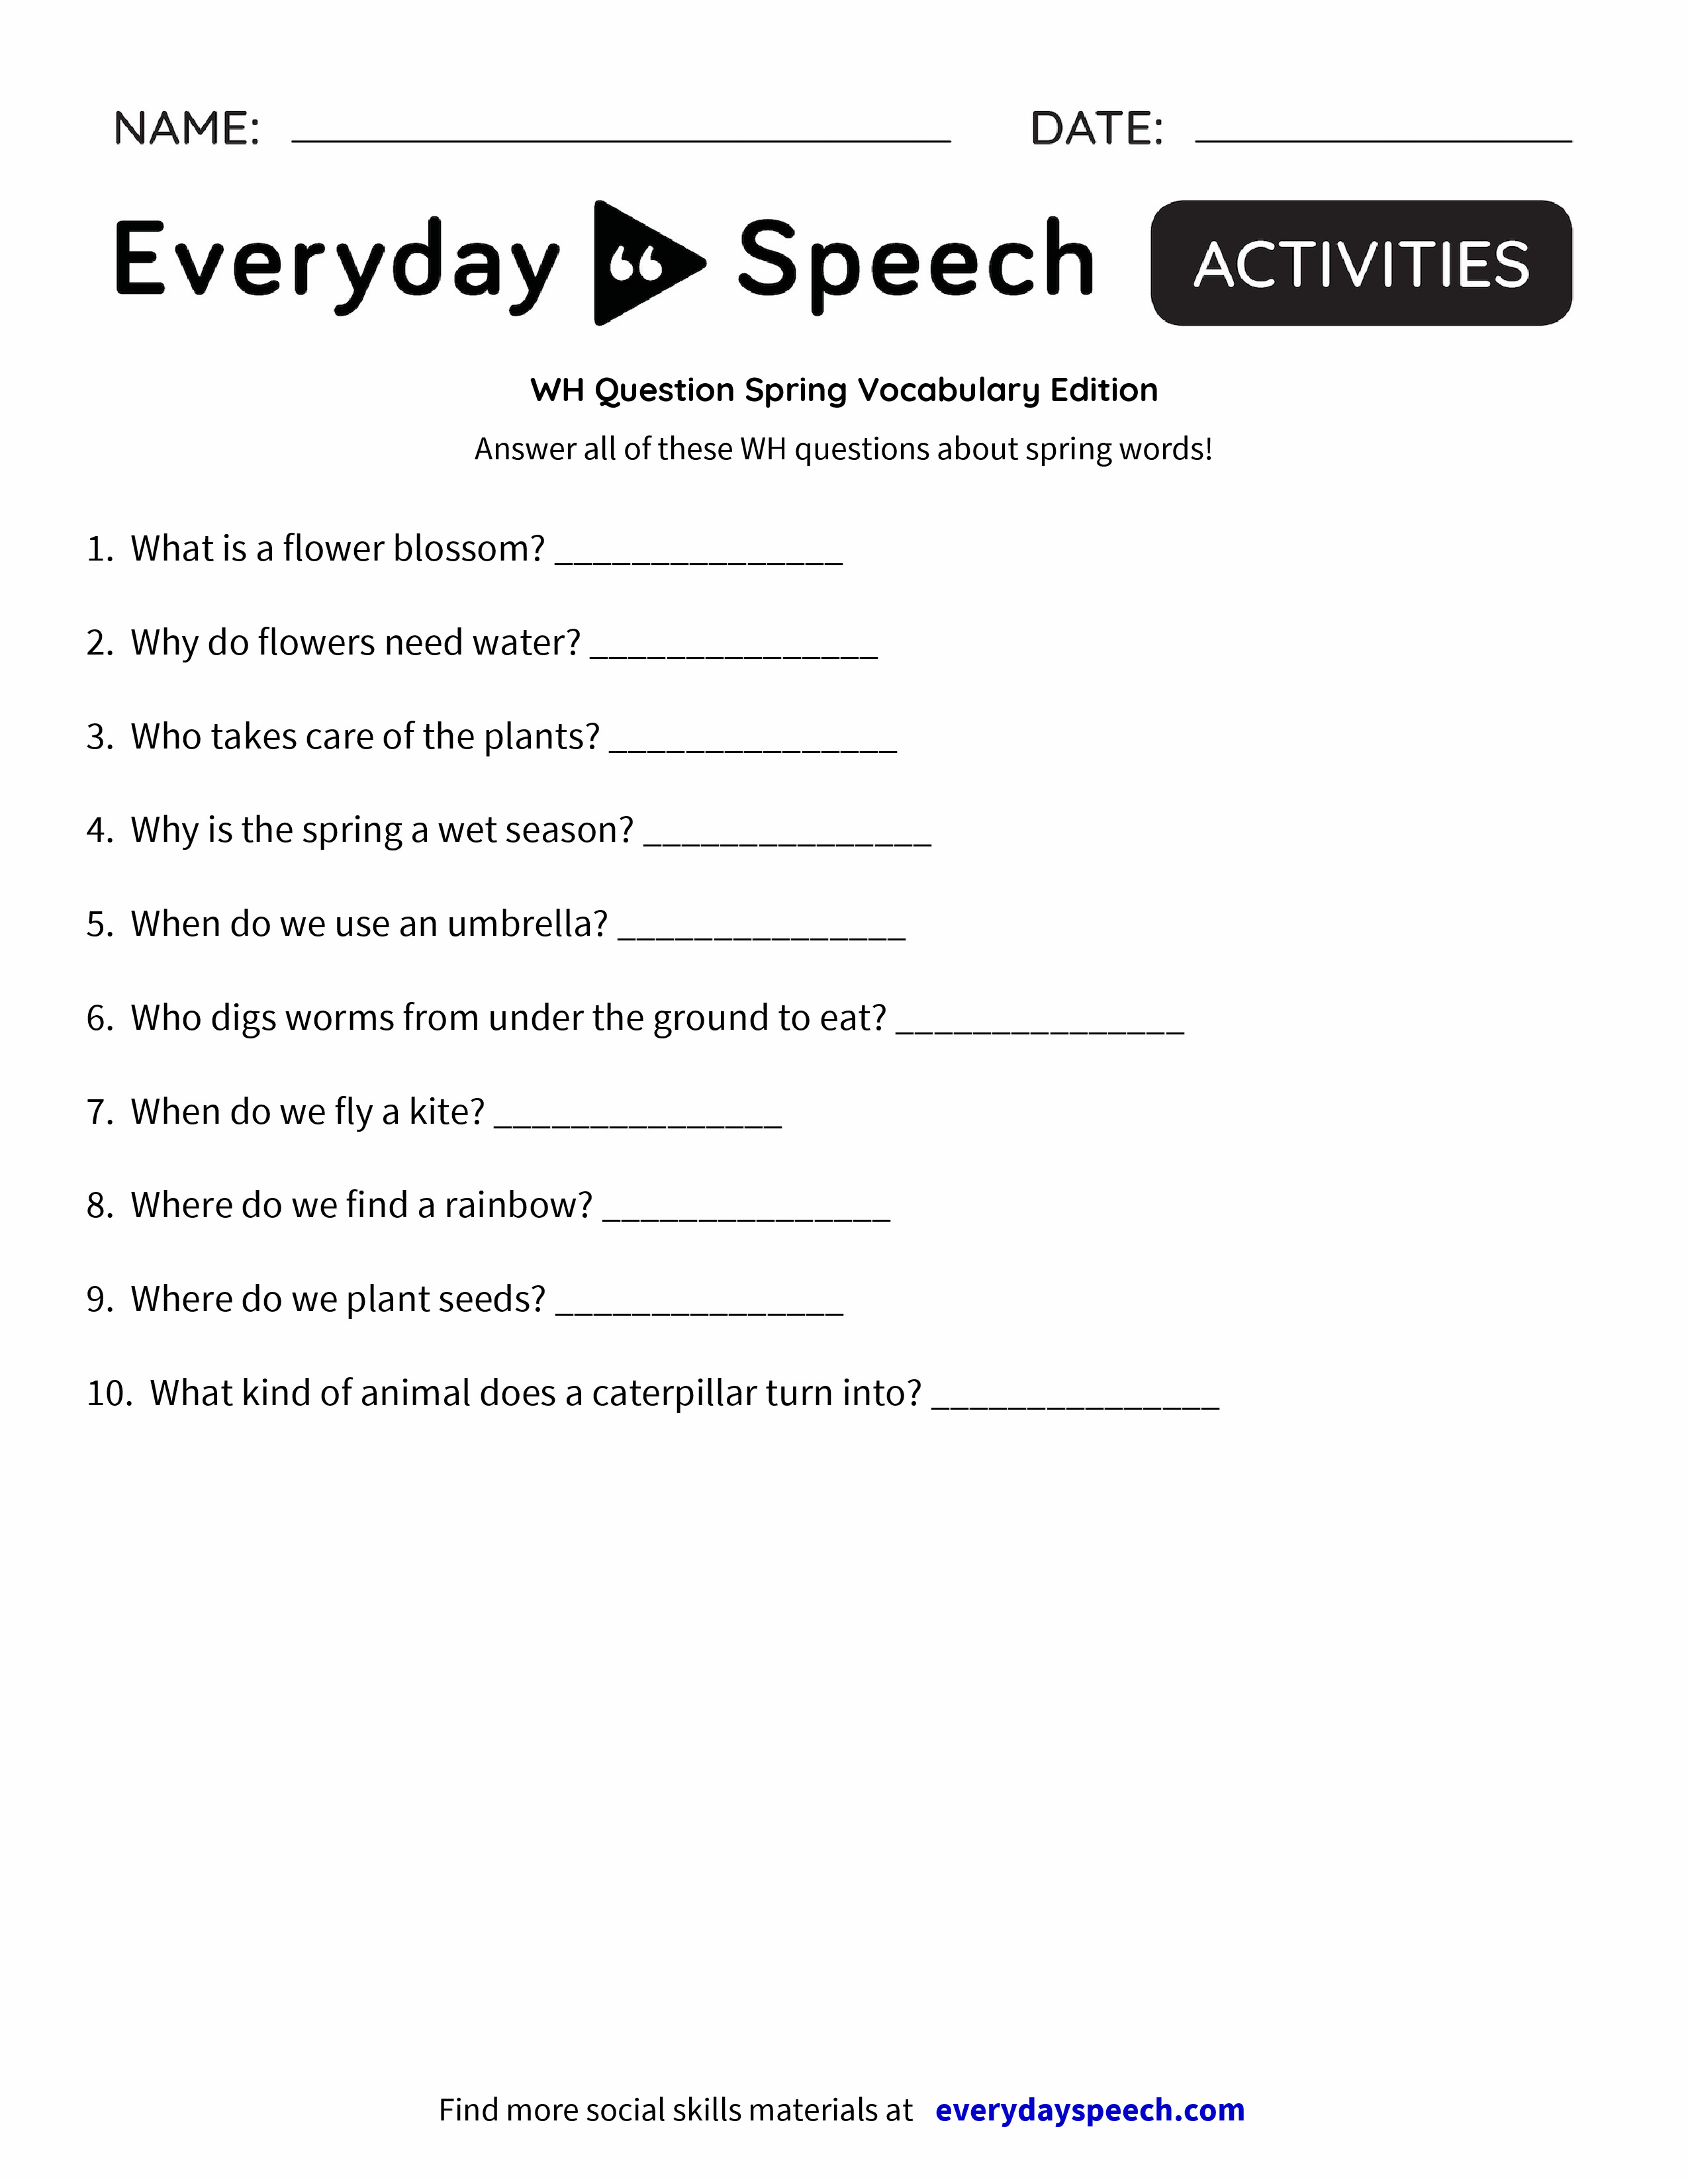 Worksheets How To Eat Fried Worms Worksheets 200 most downloaded worksheets everyday speech wh question spring vocabulary edition